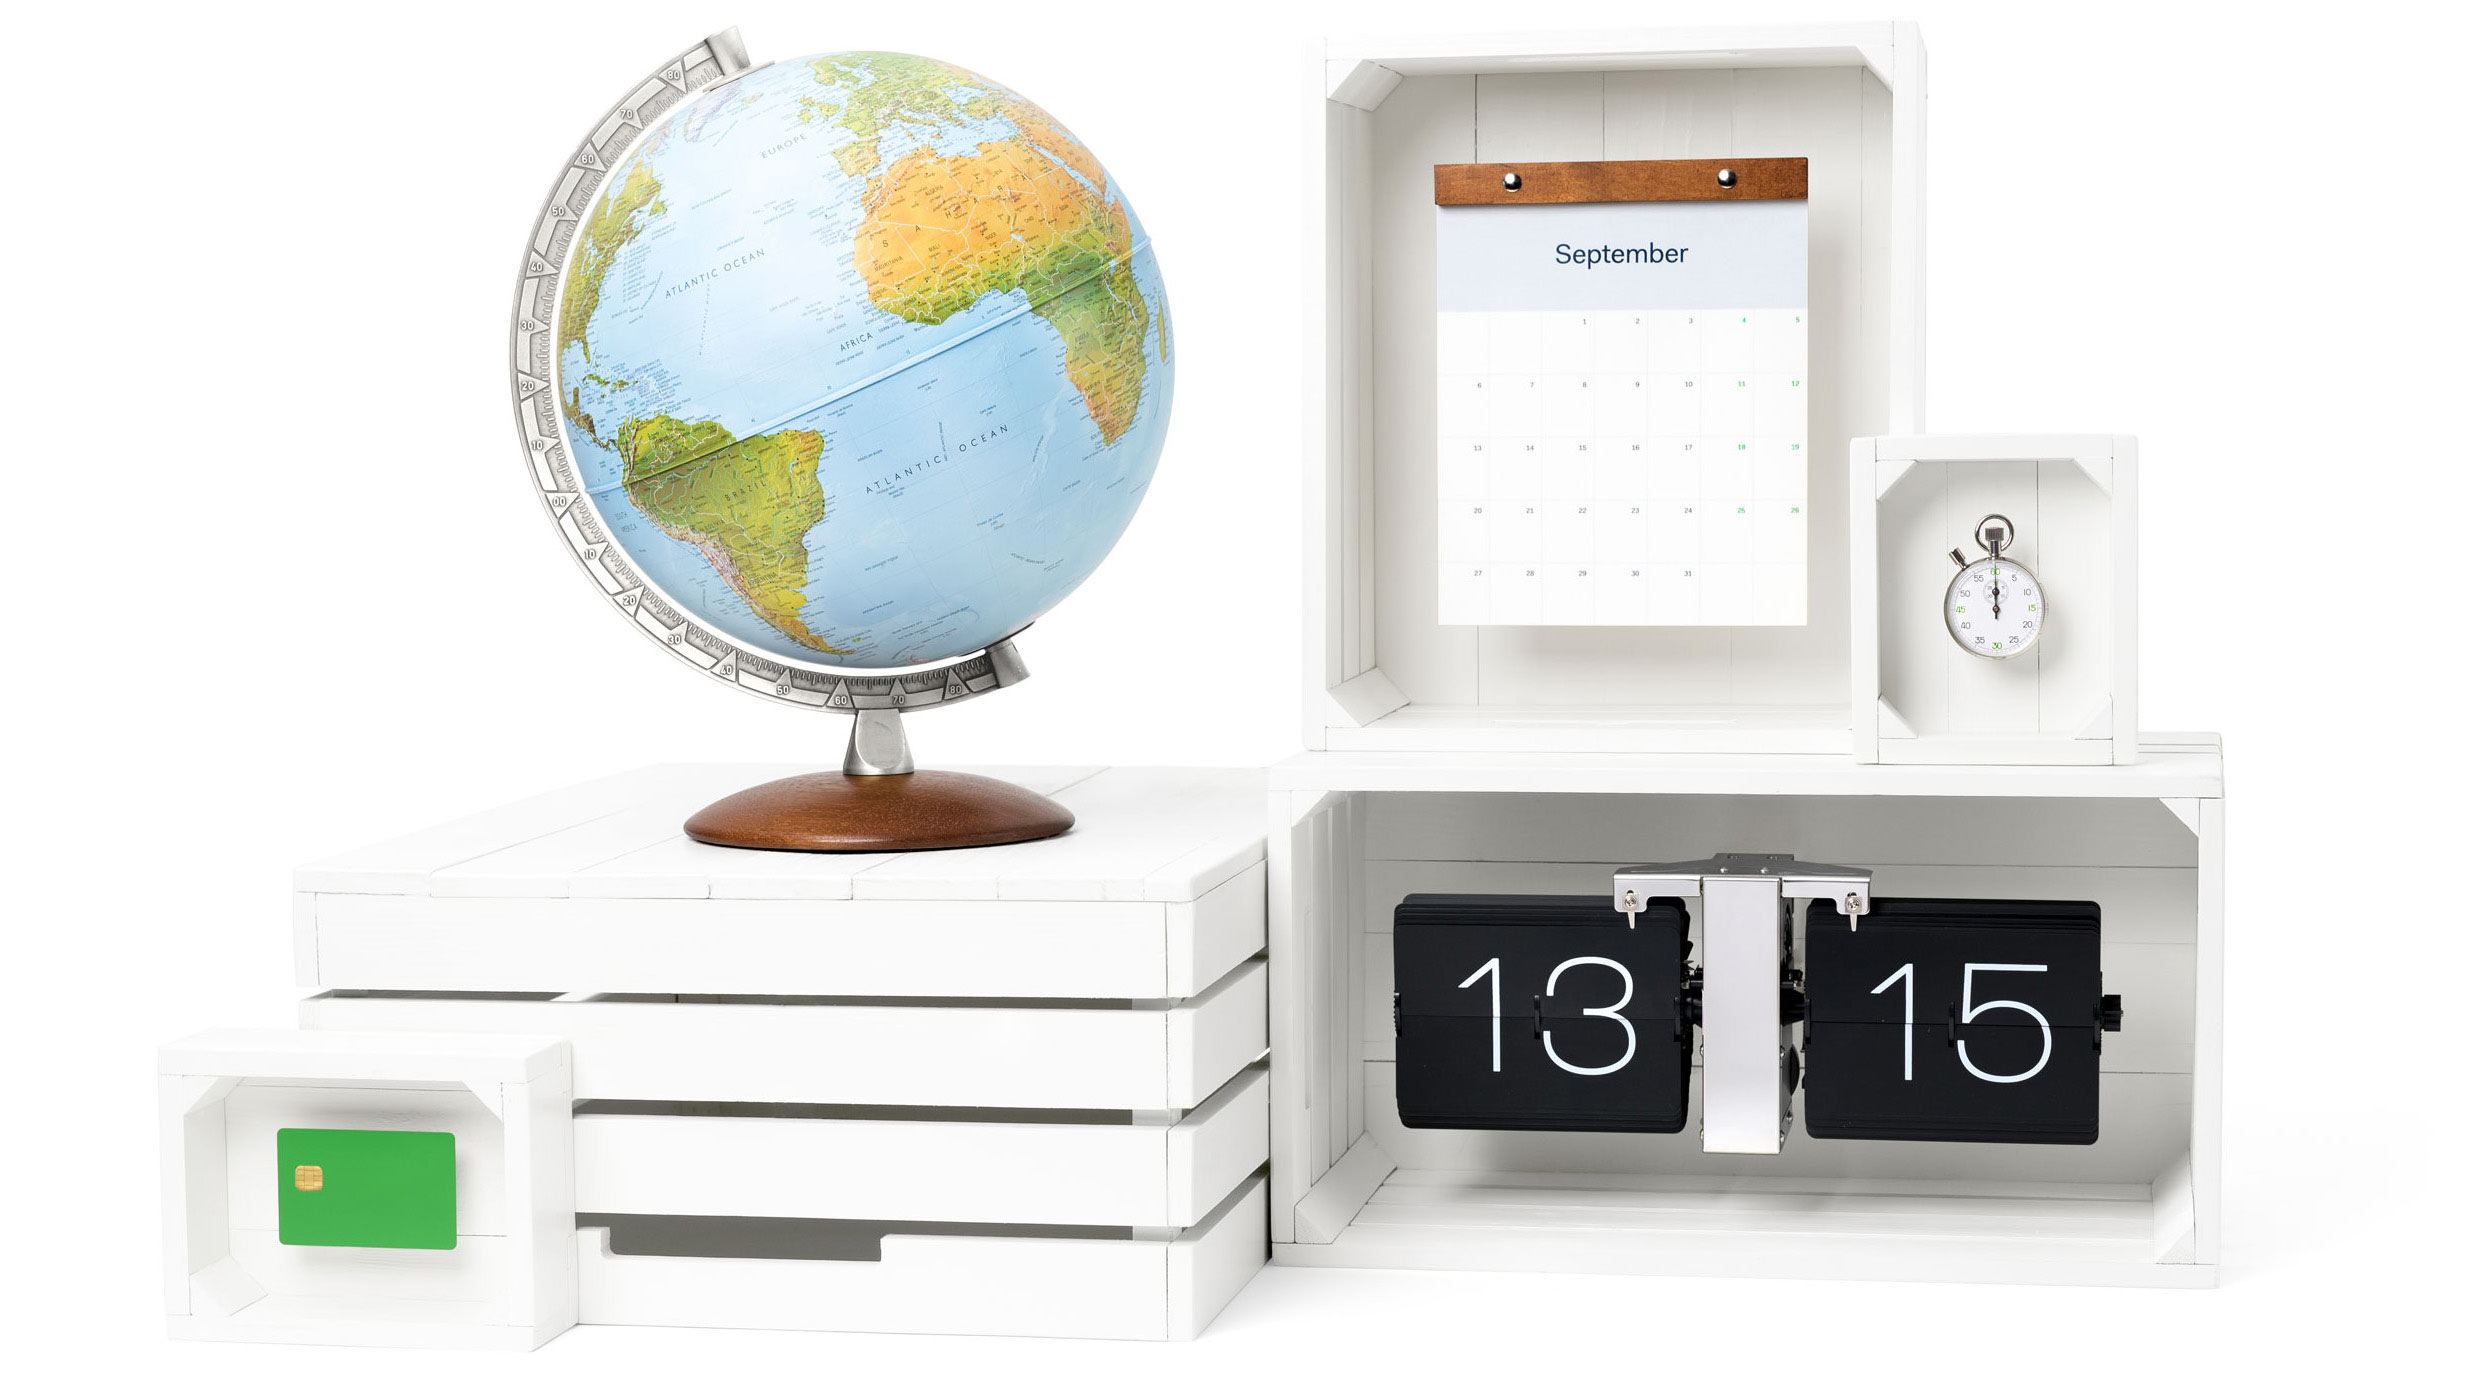 A variety of items displayed on white boxes and a white background